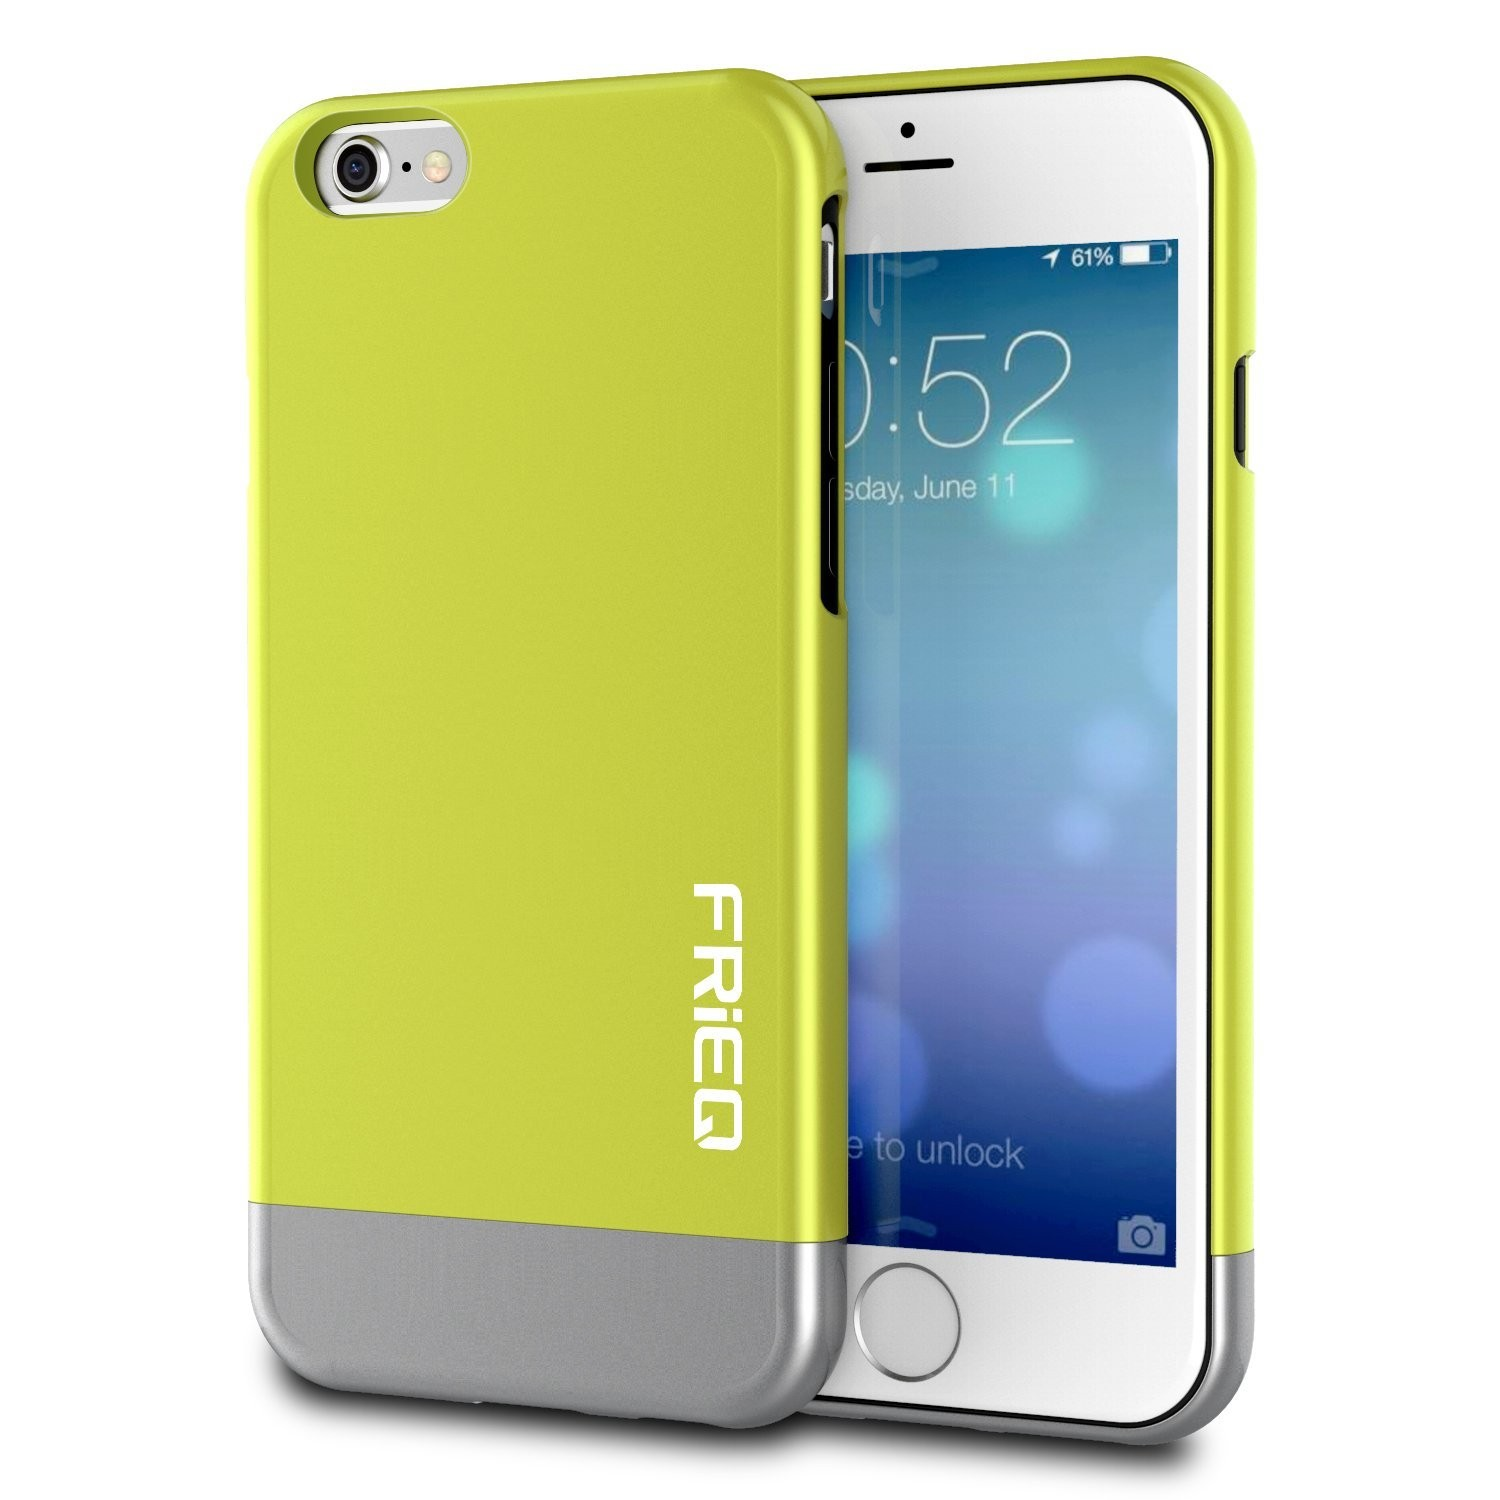 """iPhone 6 Case, FRiEQ Dual Layer Protection Slim Trendy Hard Case for Apple iPhone 6 (4.7"""") - Safe from Drops and Slips - Green, FR-DLP-GN"""